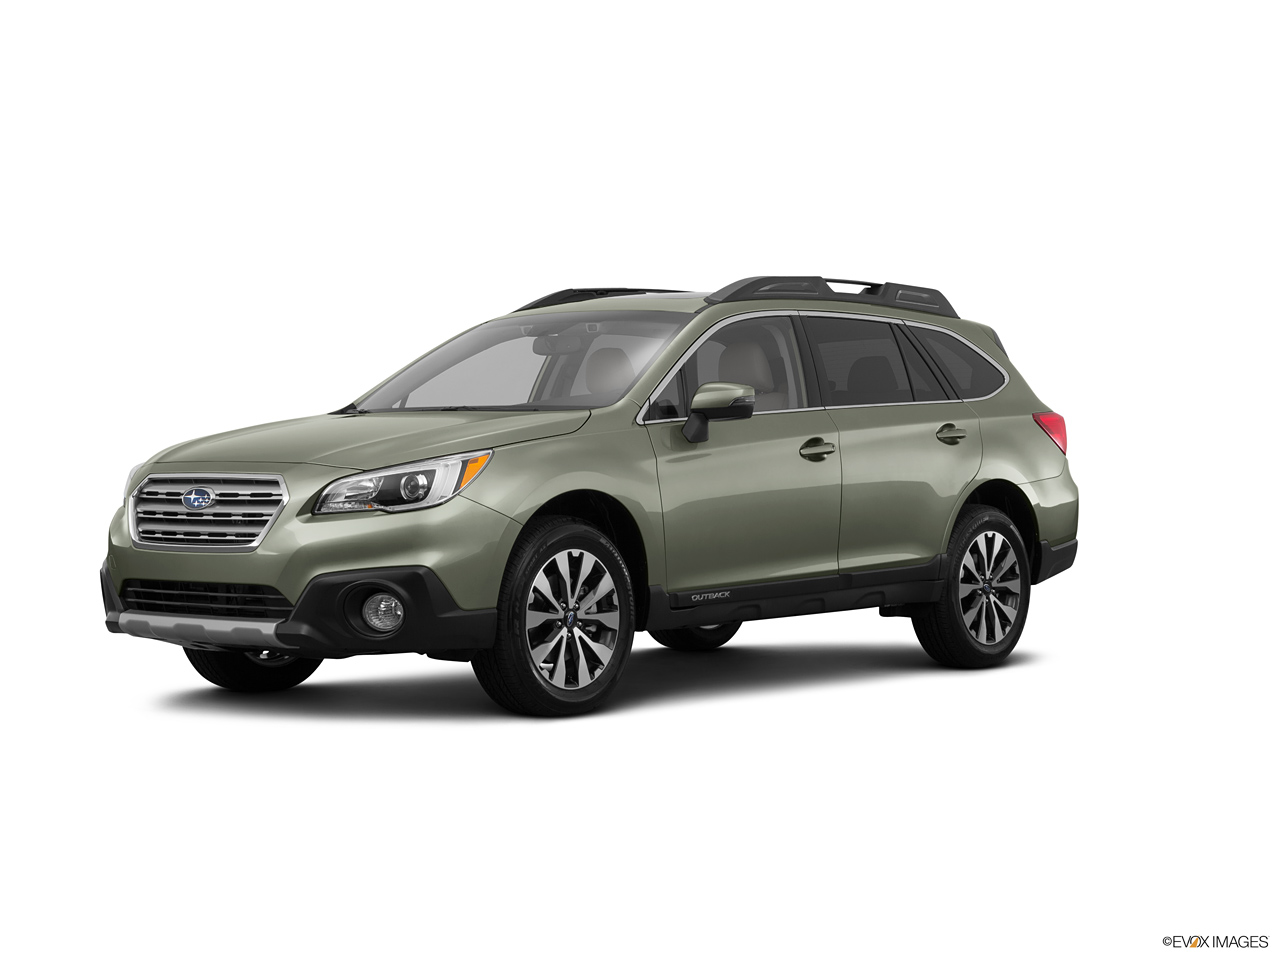 subaru outback 2016 3 6l in bahrain new car prices specs reviews photos yallamotor. Black Bedroom Furniture Sets. Home Design Ideas